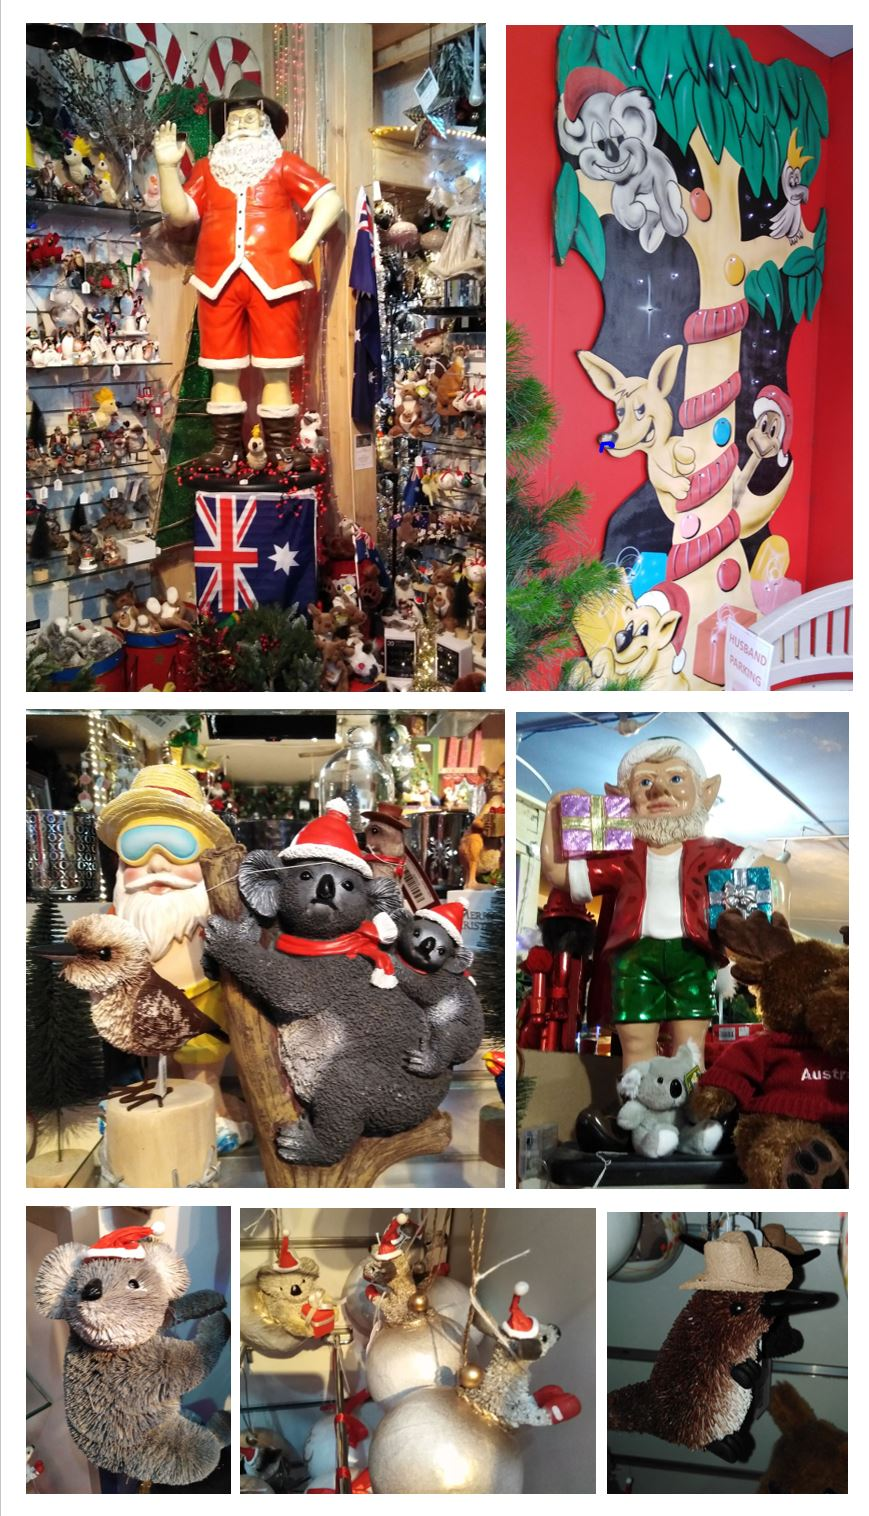 Collage of Aussie themed decorations at Santa's Place